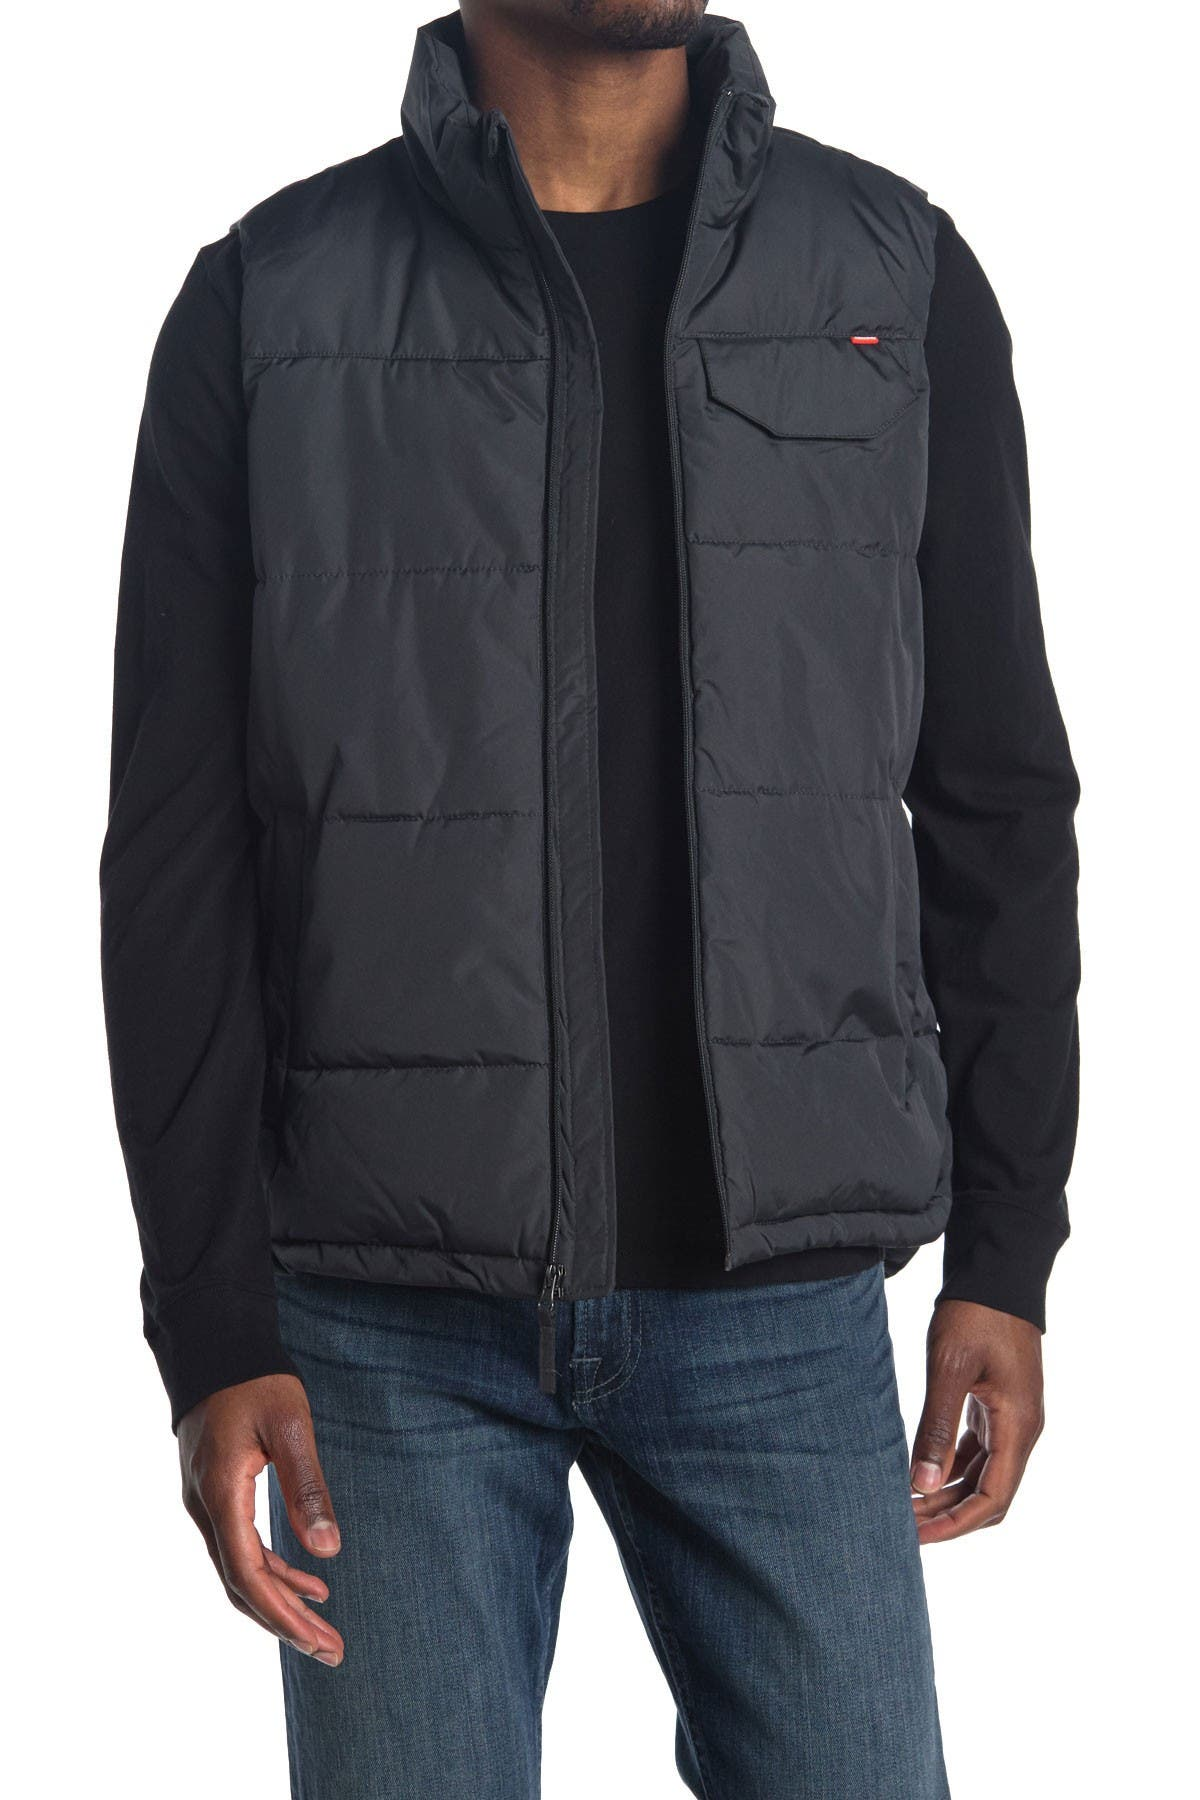 Image of Hawke & Co. Puffer Zip Vest